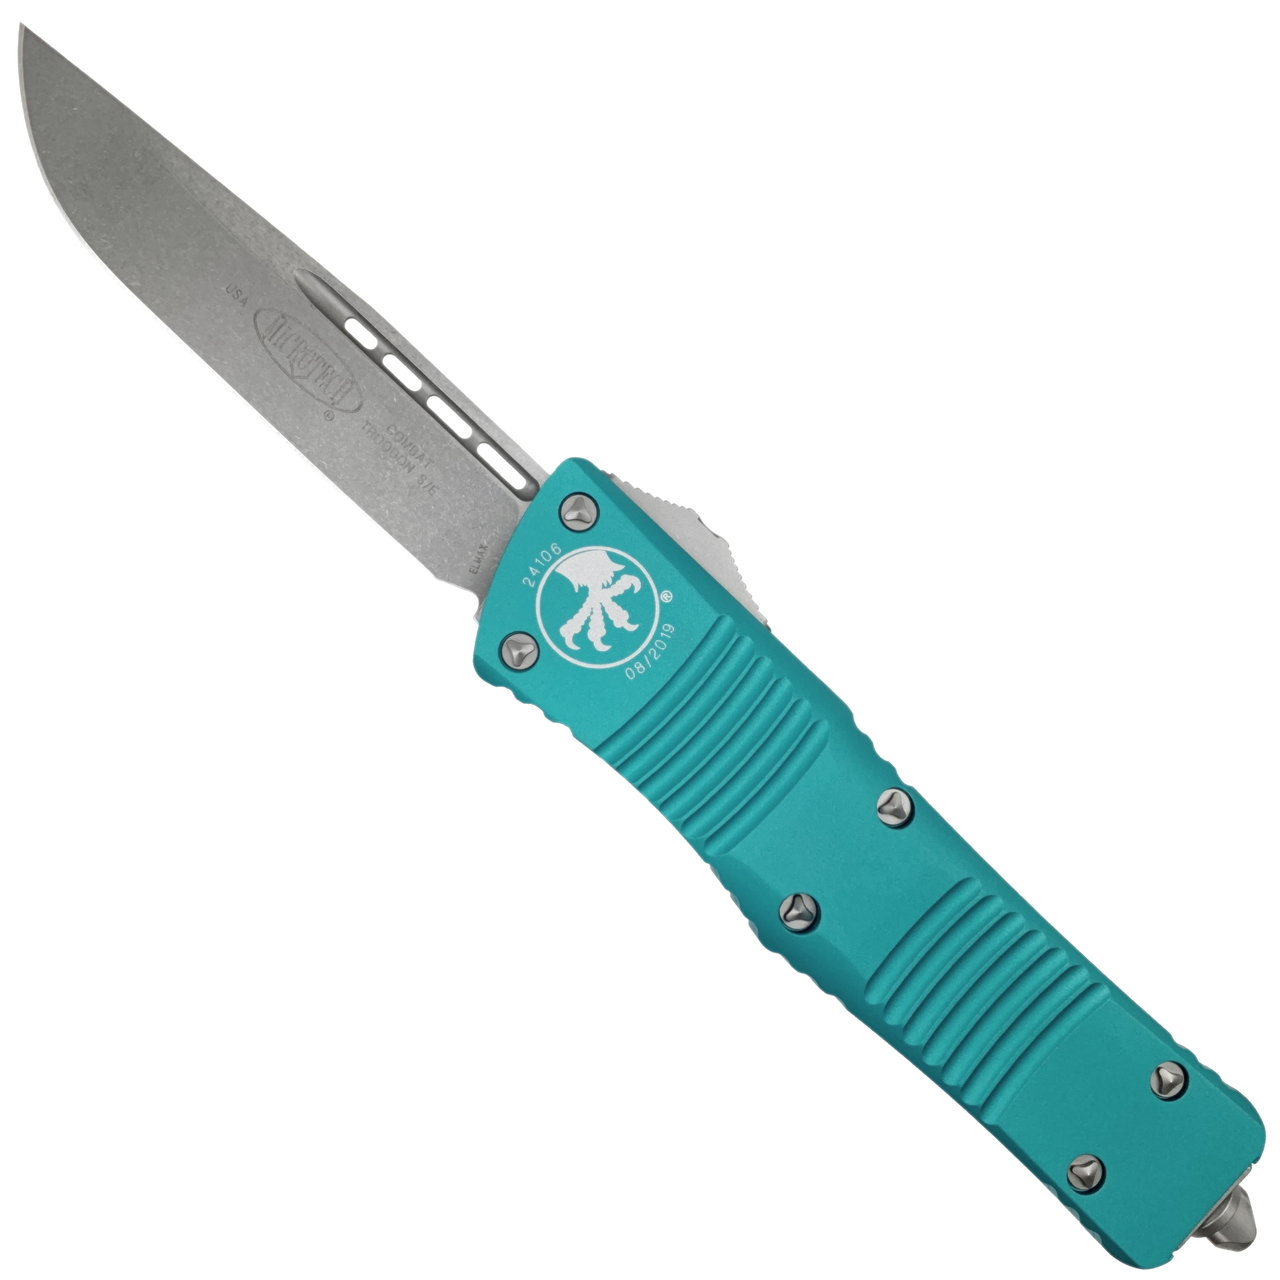 Knife Review: Microtech Combat Troodon OTF, Turquoise